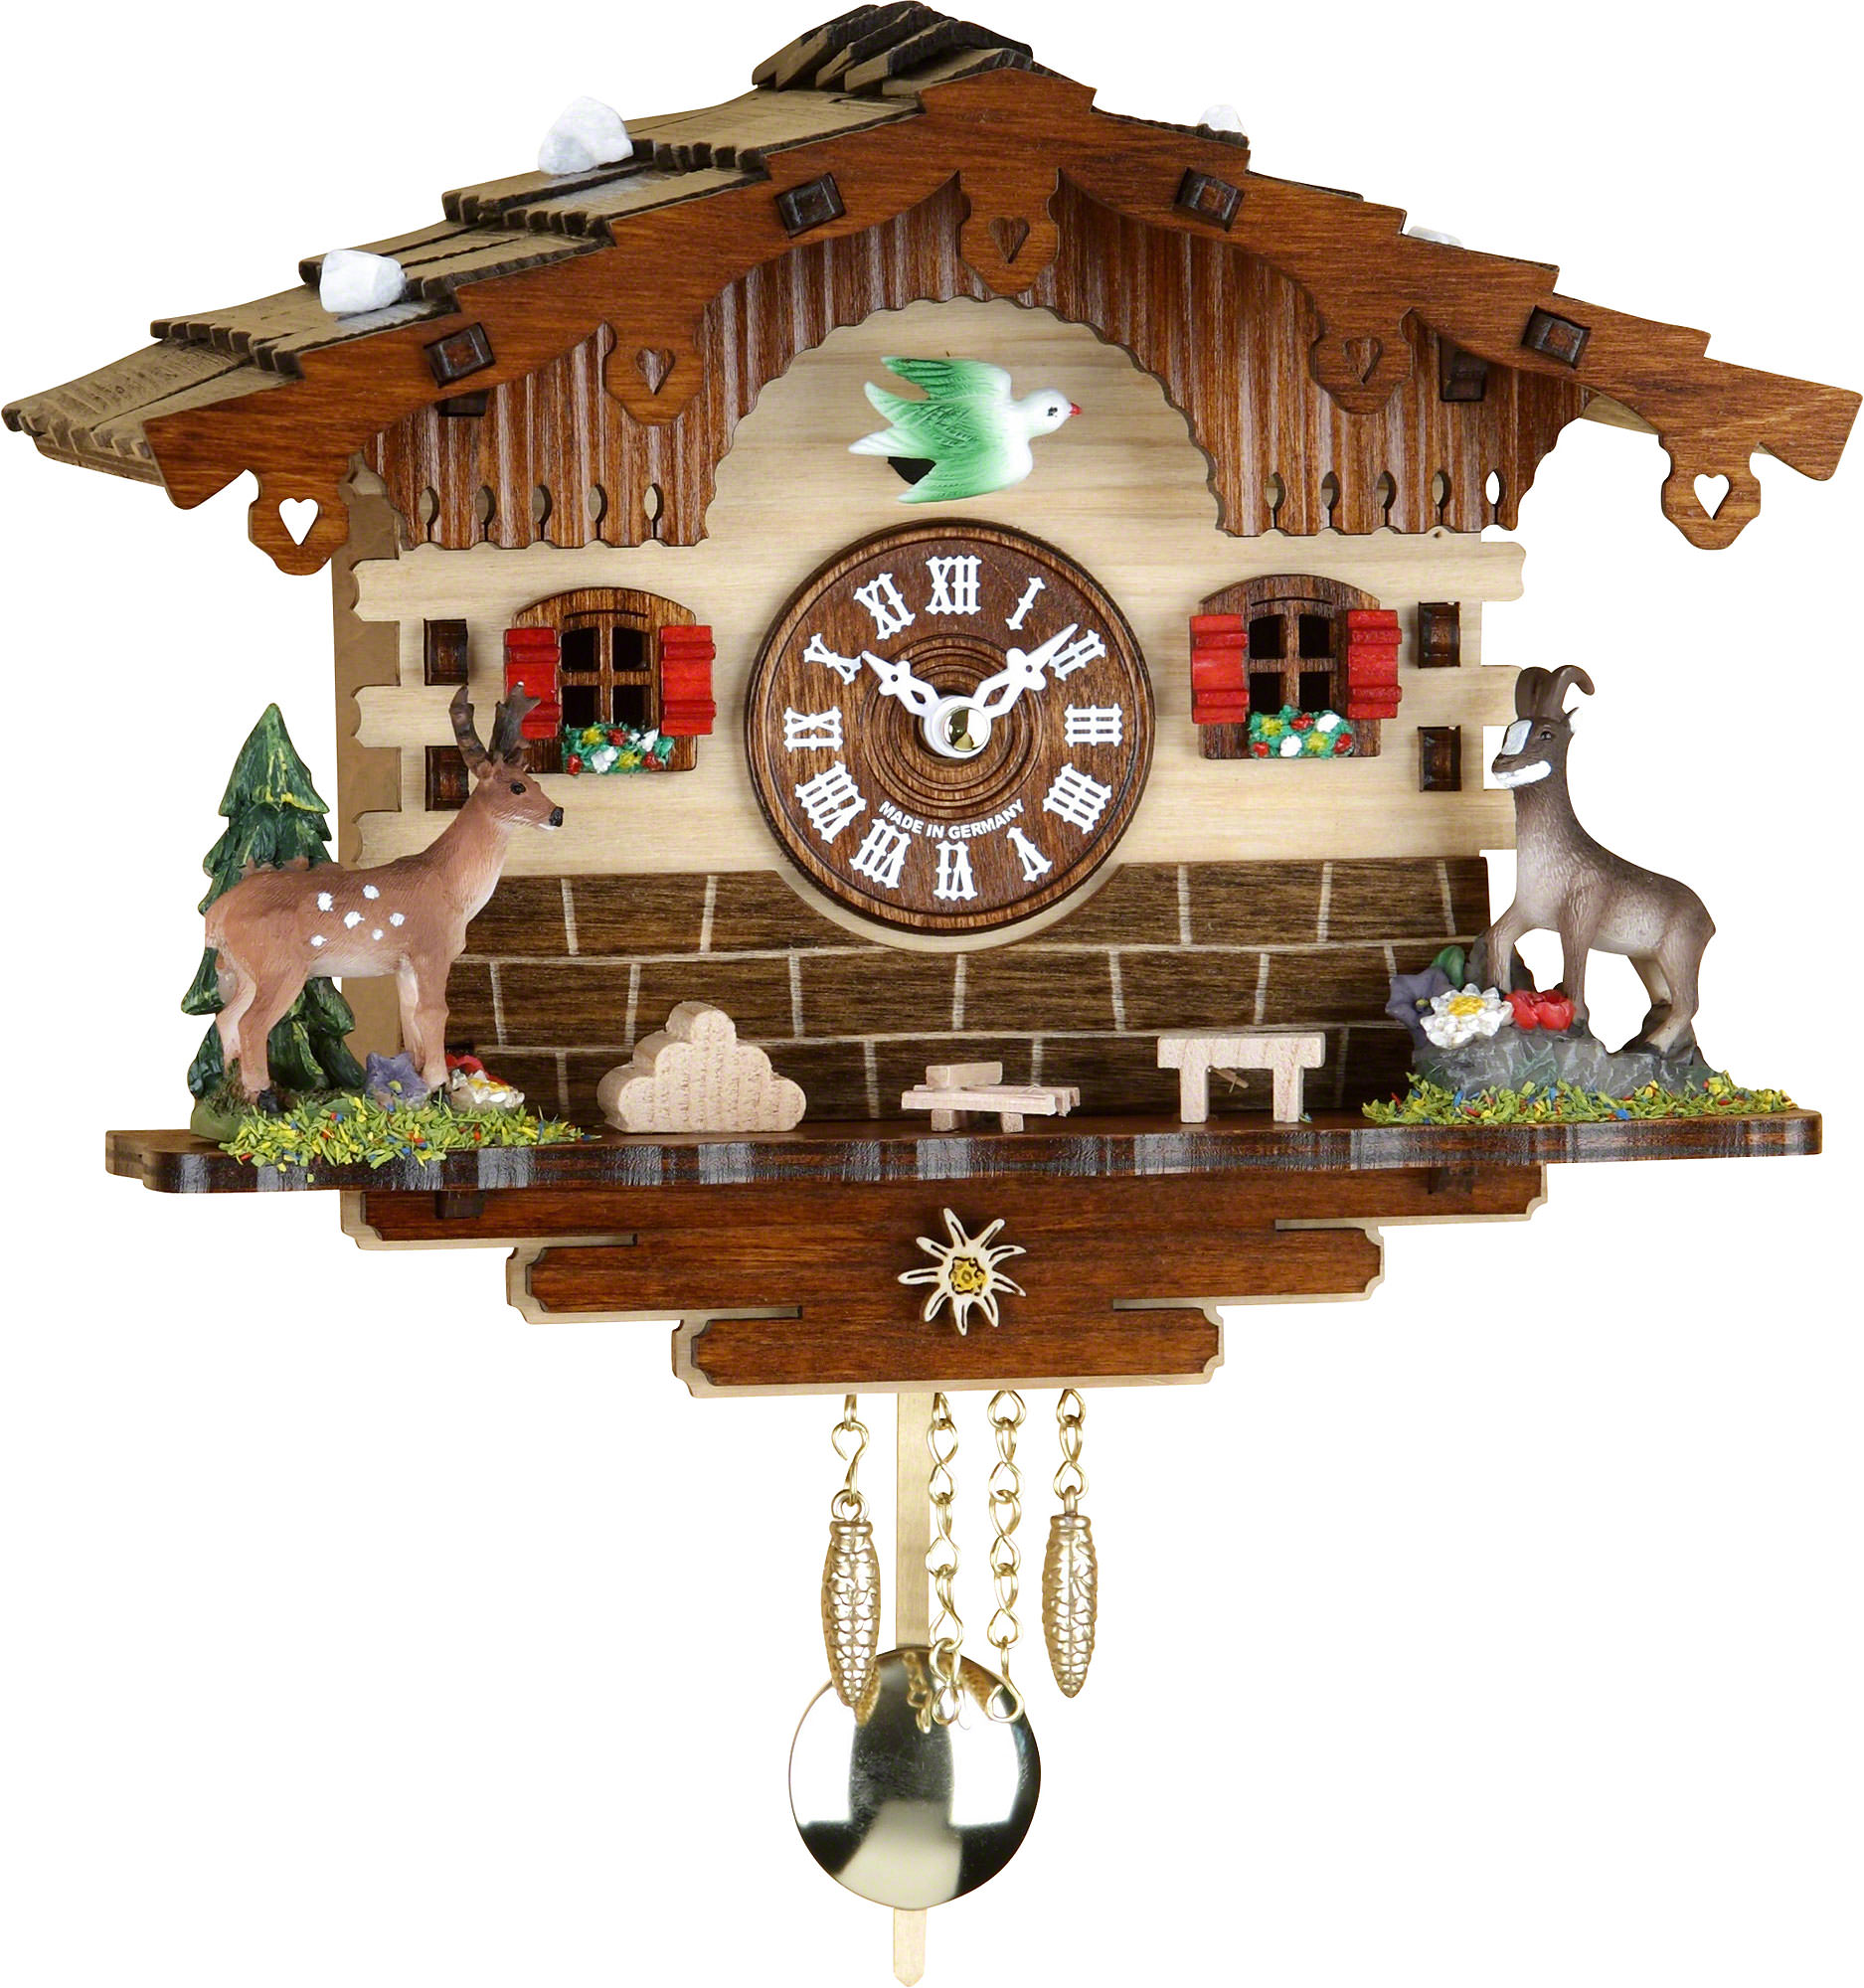 Cuckoo clock quartz movement black forest pendulum clock style 16cm by trenkle uhren 2036pq - Cuckoo clock pendulum ...